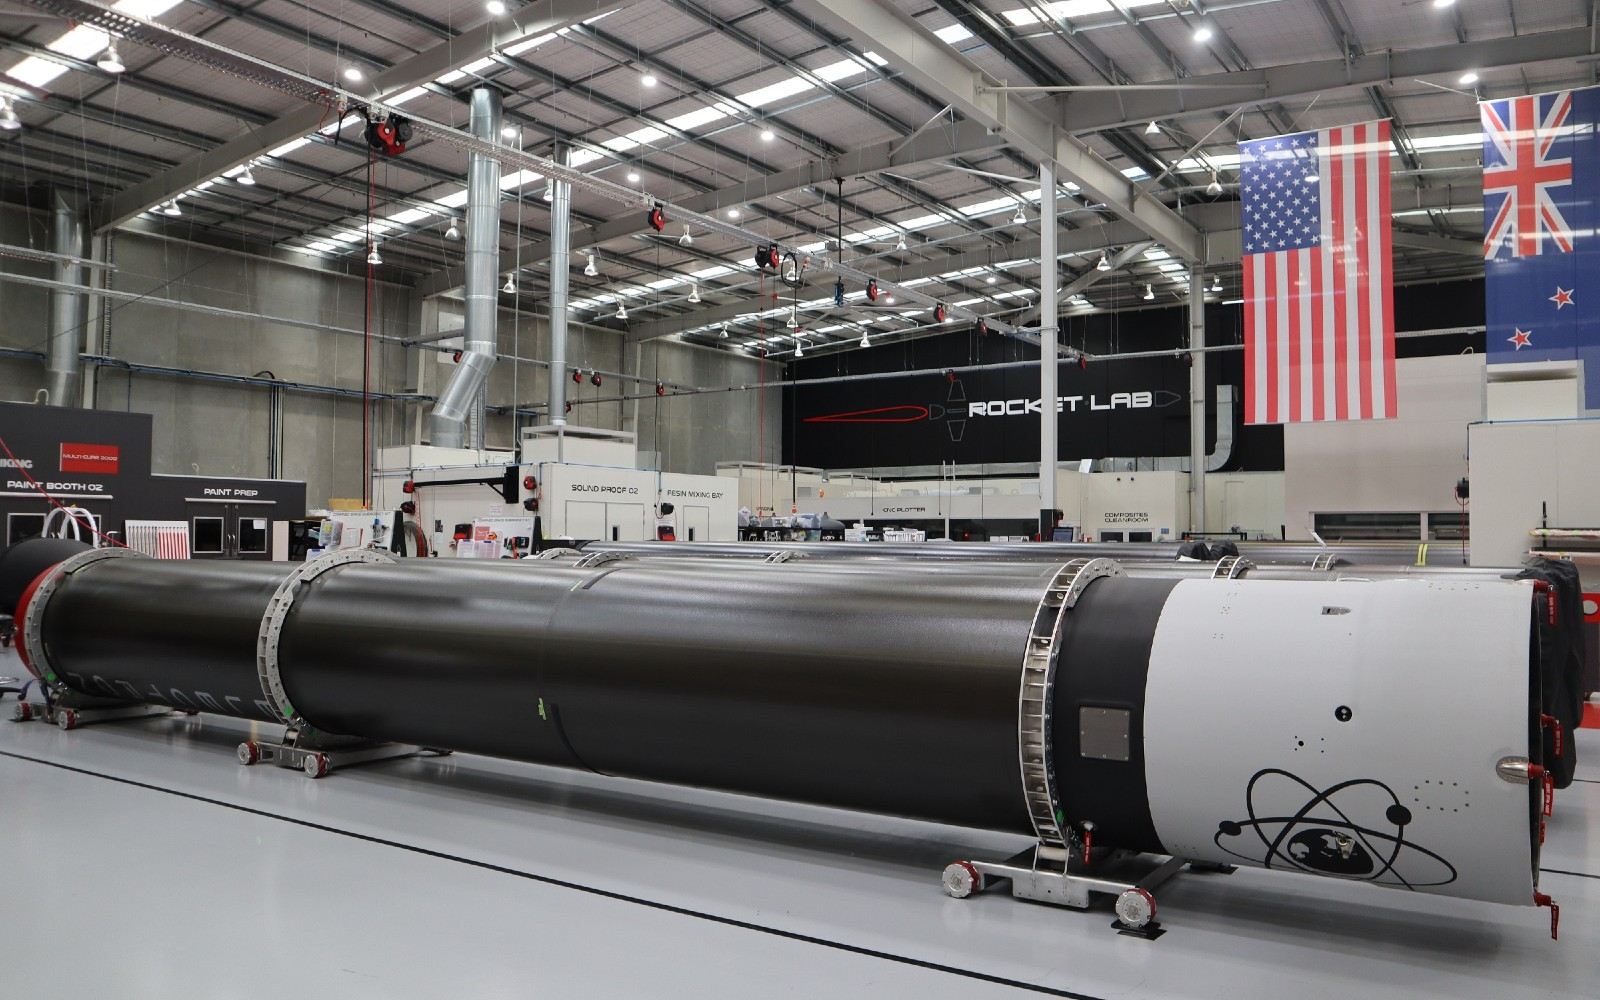 Rocket Lab Electron